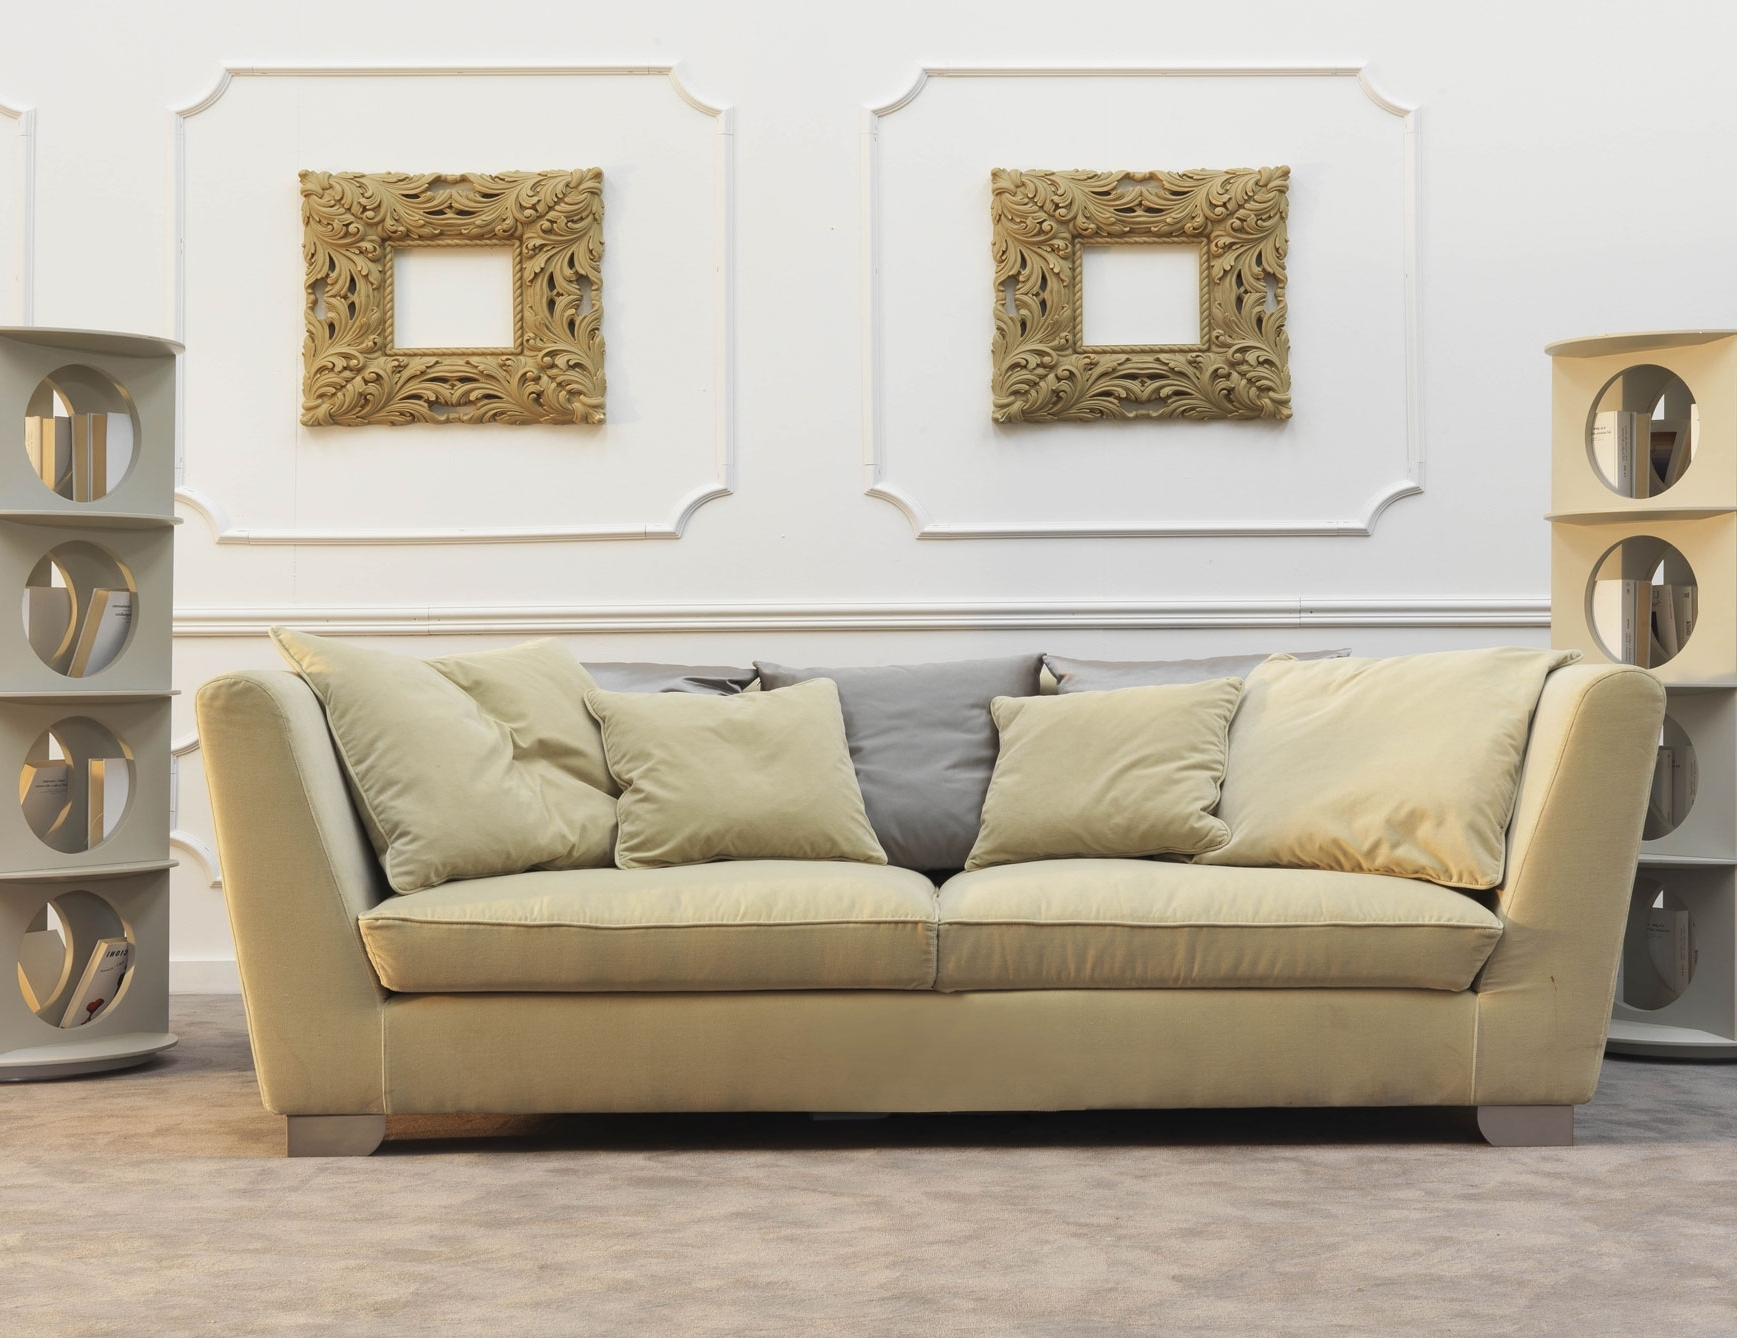 Nella Vetrina Douillet Dou02 Italian Designer Cream Fabric Sofa Within Well Liked Sofas And Chairs (View 6 of 20)